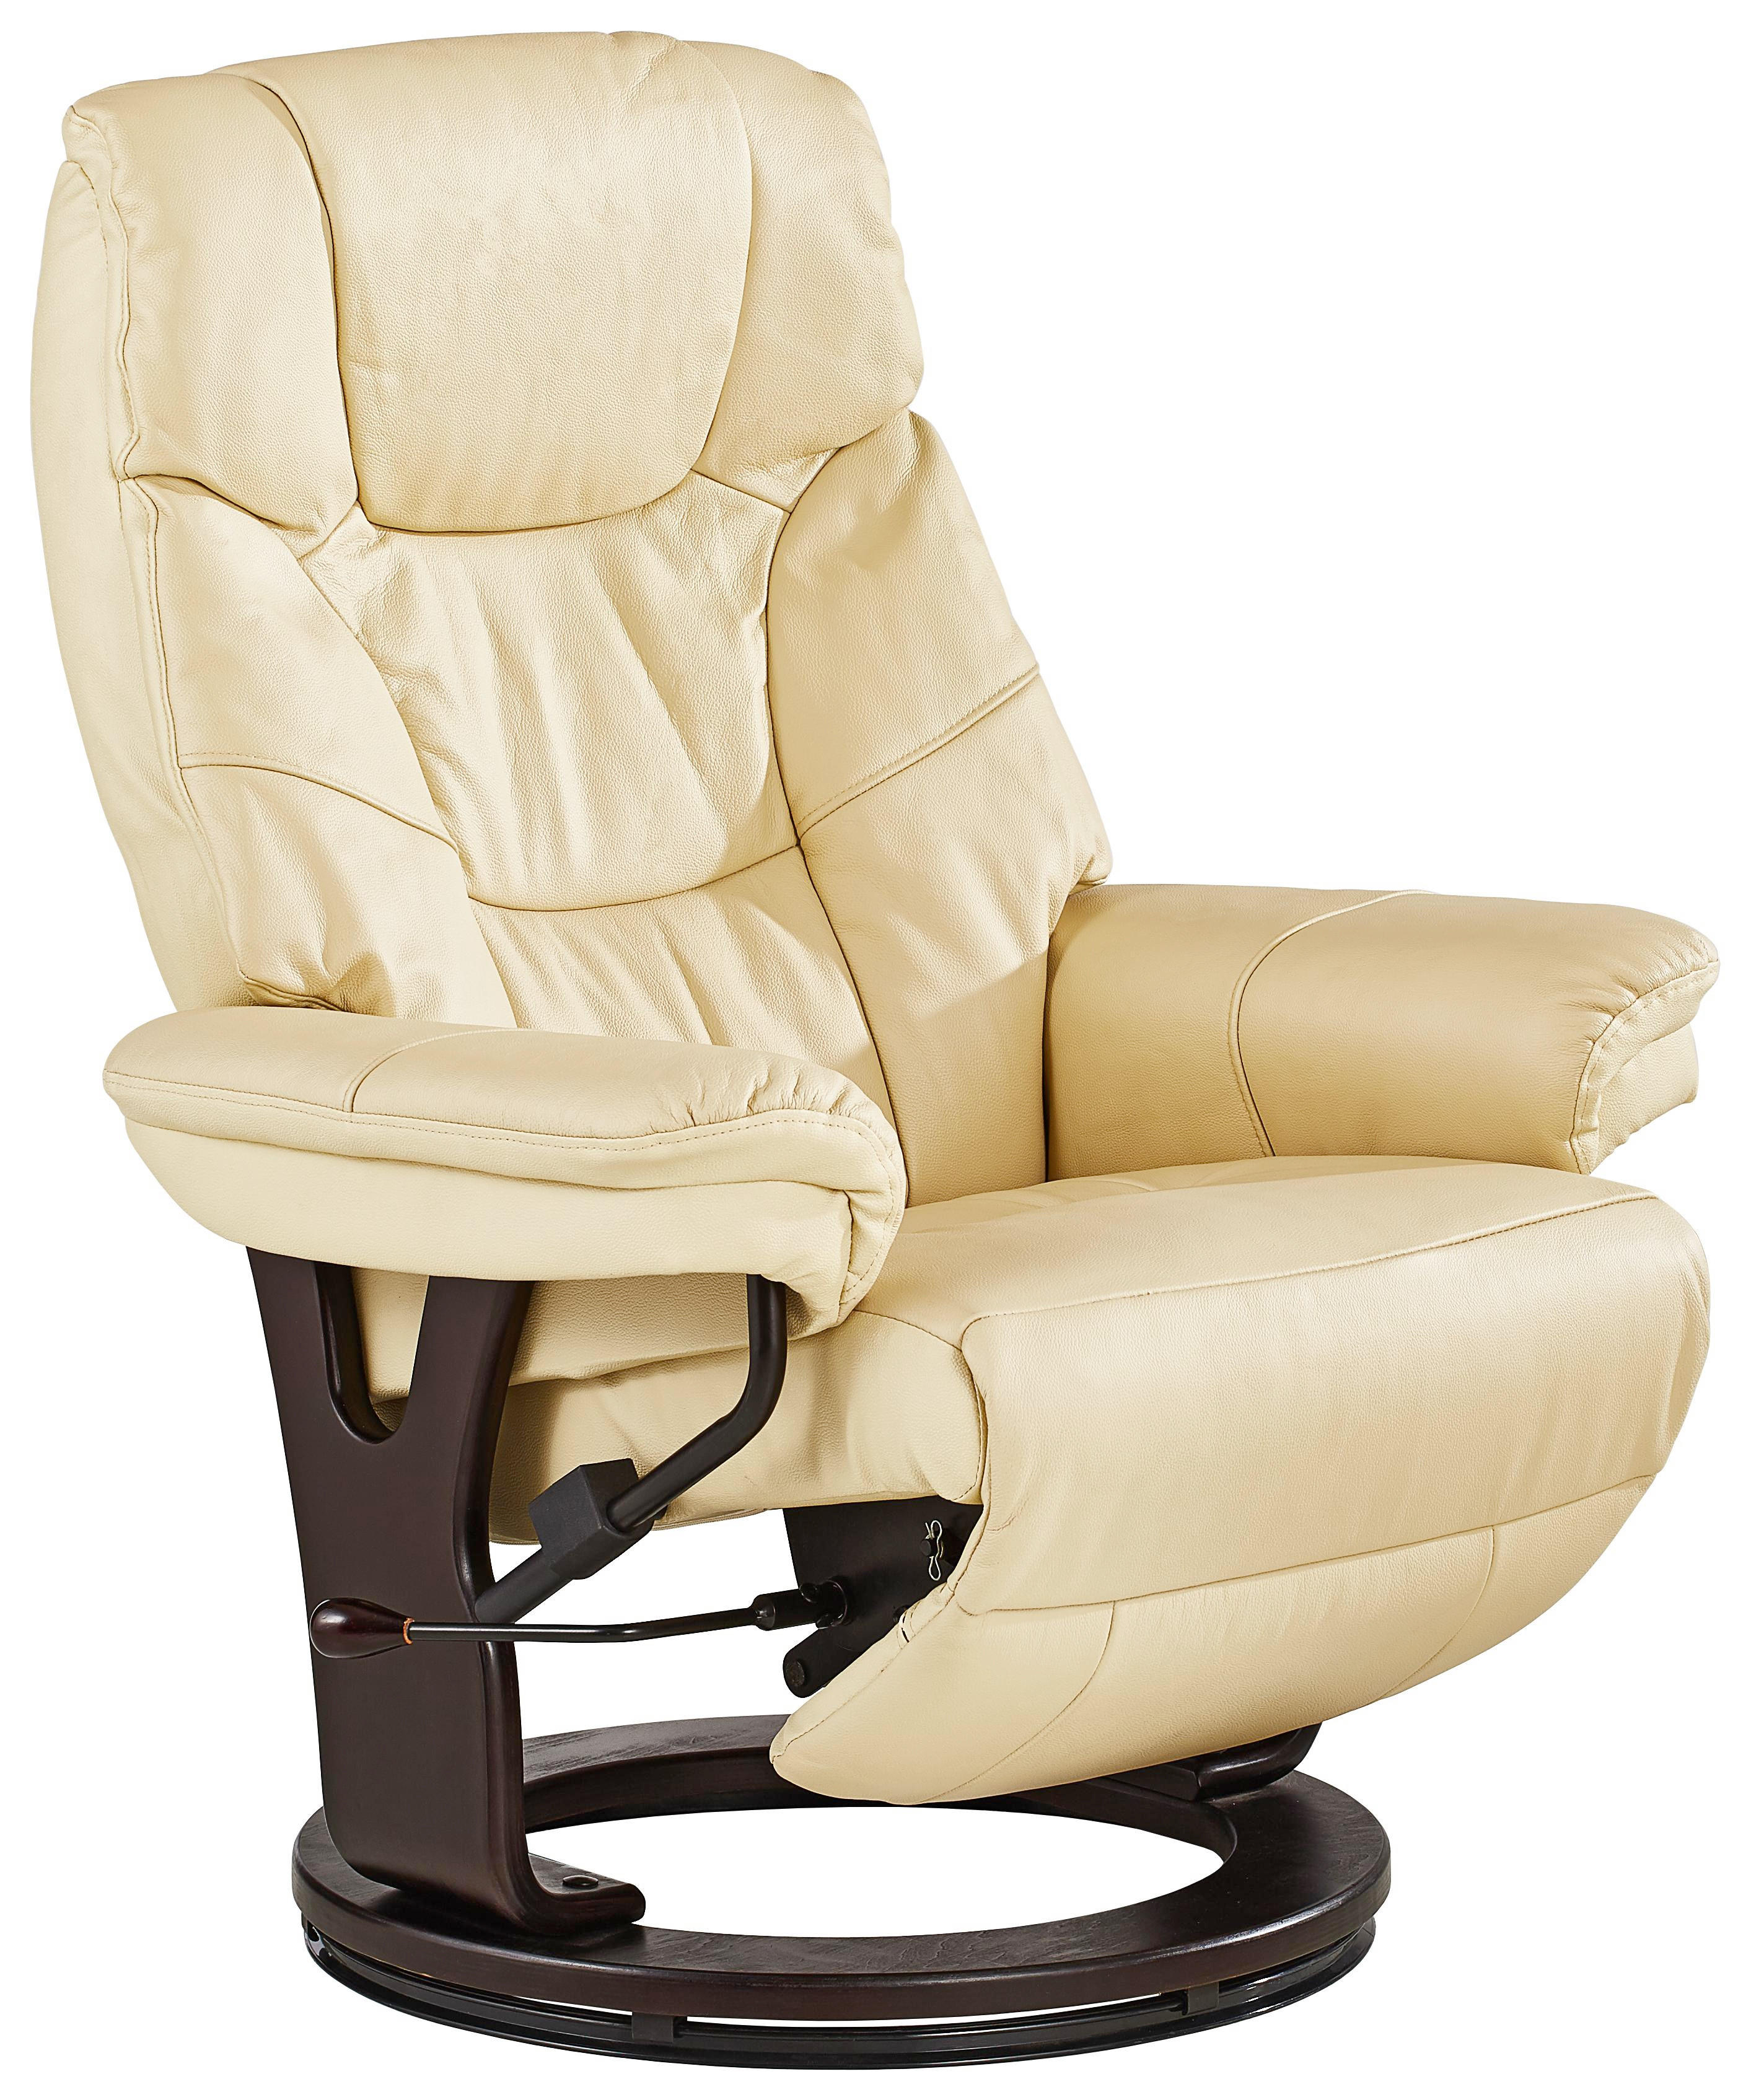 Perfect Design Relaxsessel Leder Full Size Of Relaxsessel Modern Design  With Relaxsessel Modern Design With Relaxsessel Beige Leder With Moderne  Relaxsessel